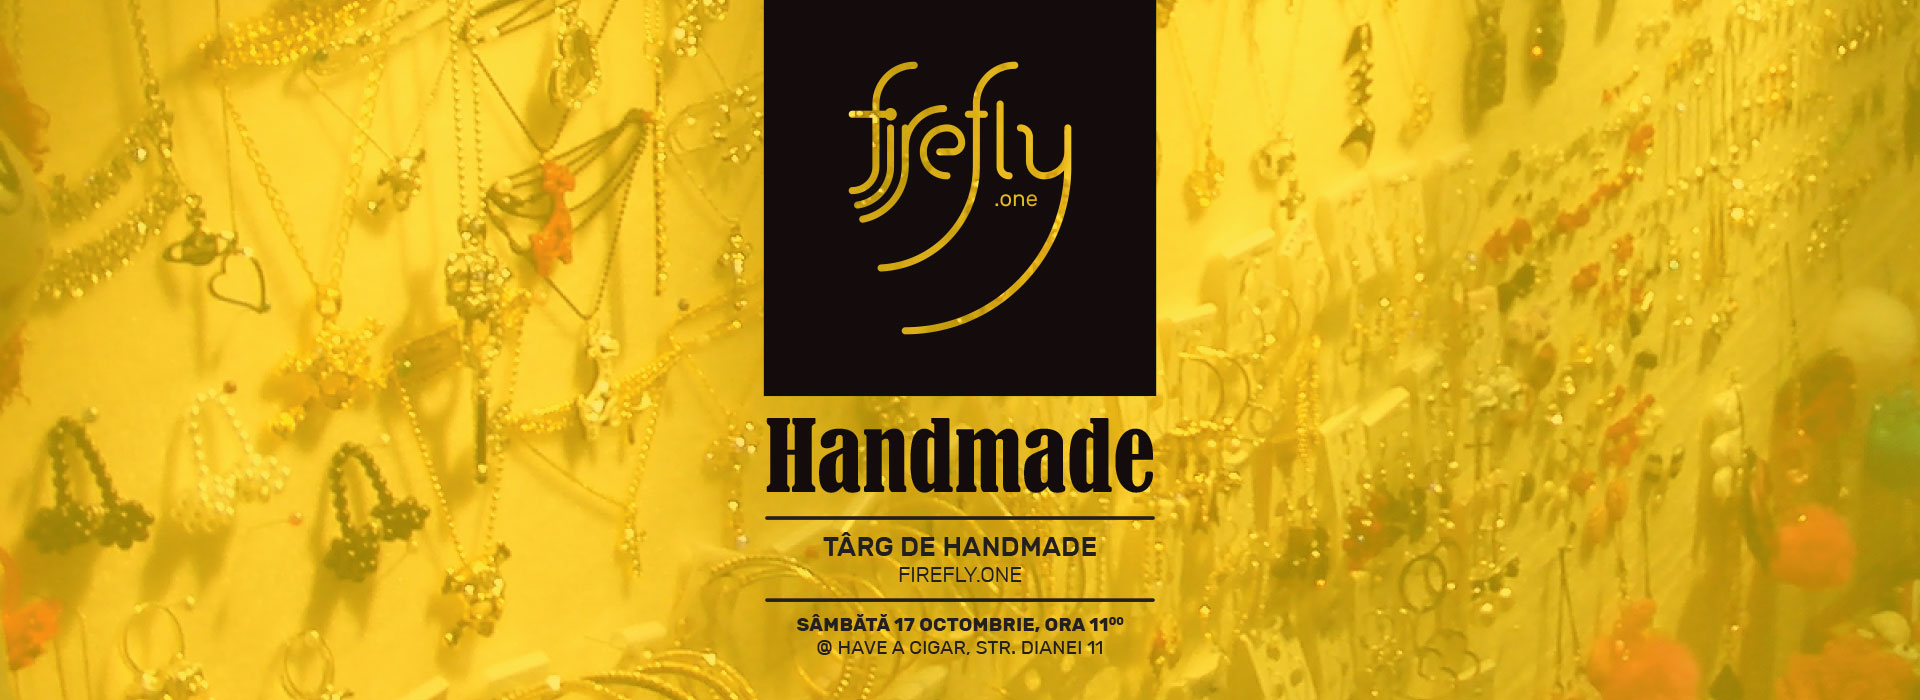 Handmade Fair, by Firefly.one